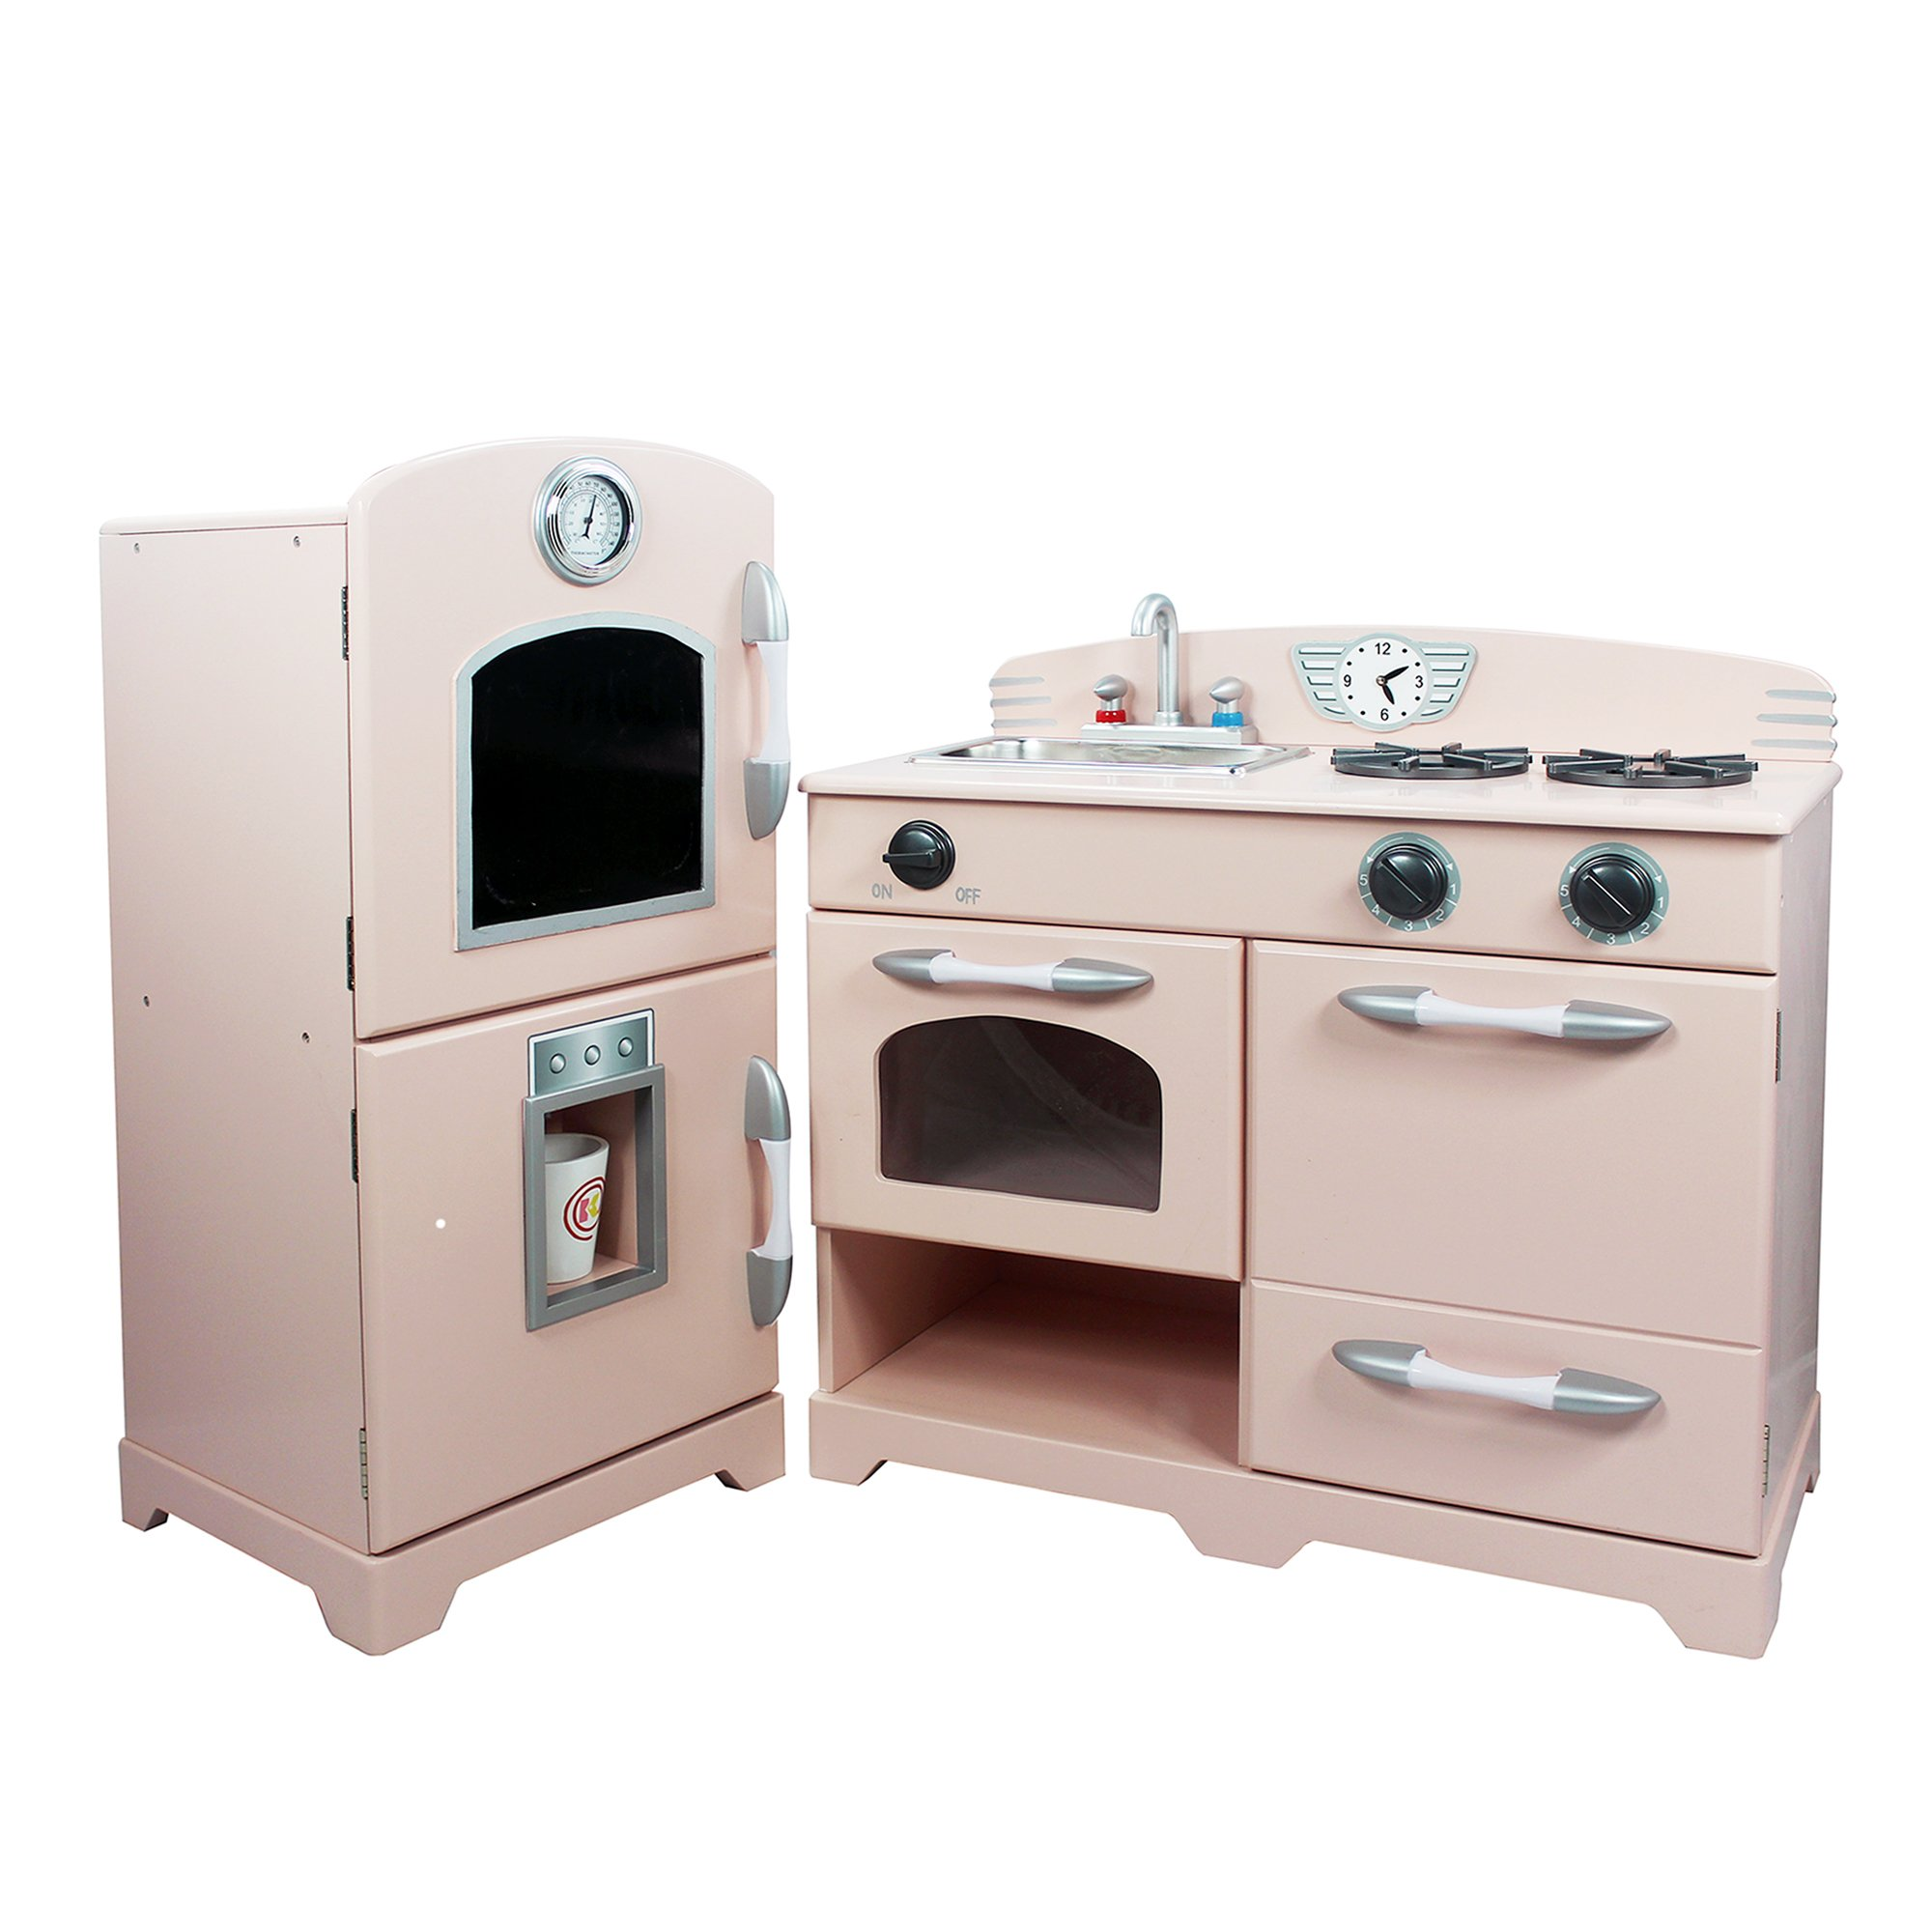 Teamson Kids - Retro Wooden Play Kitchen with Refrigerator, Freezer, Oven and Dishwasher - Pink (2 Pieces) by Teamson Kids (Image #4)